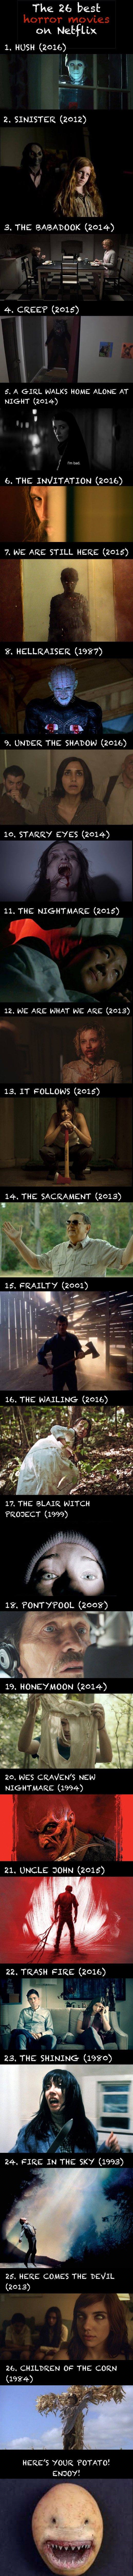 The best 26 Horror Movies on Netflix! - 9GAG